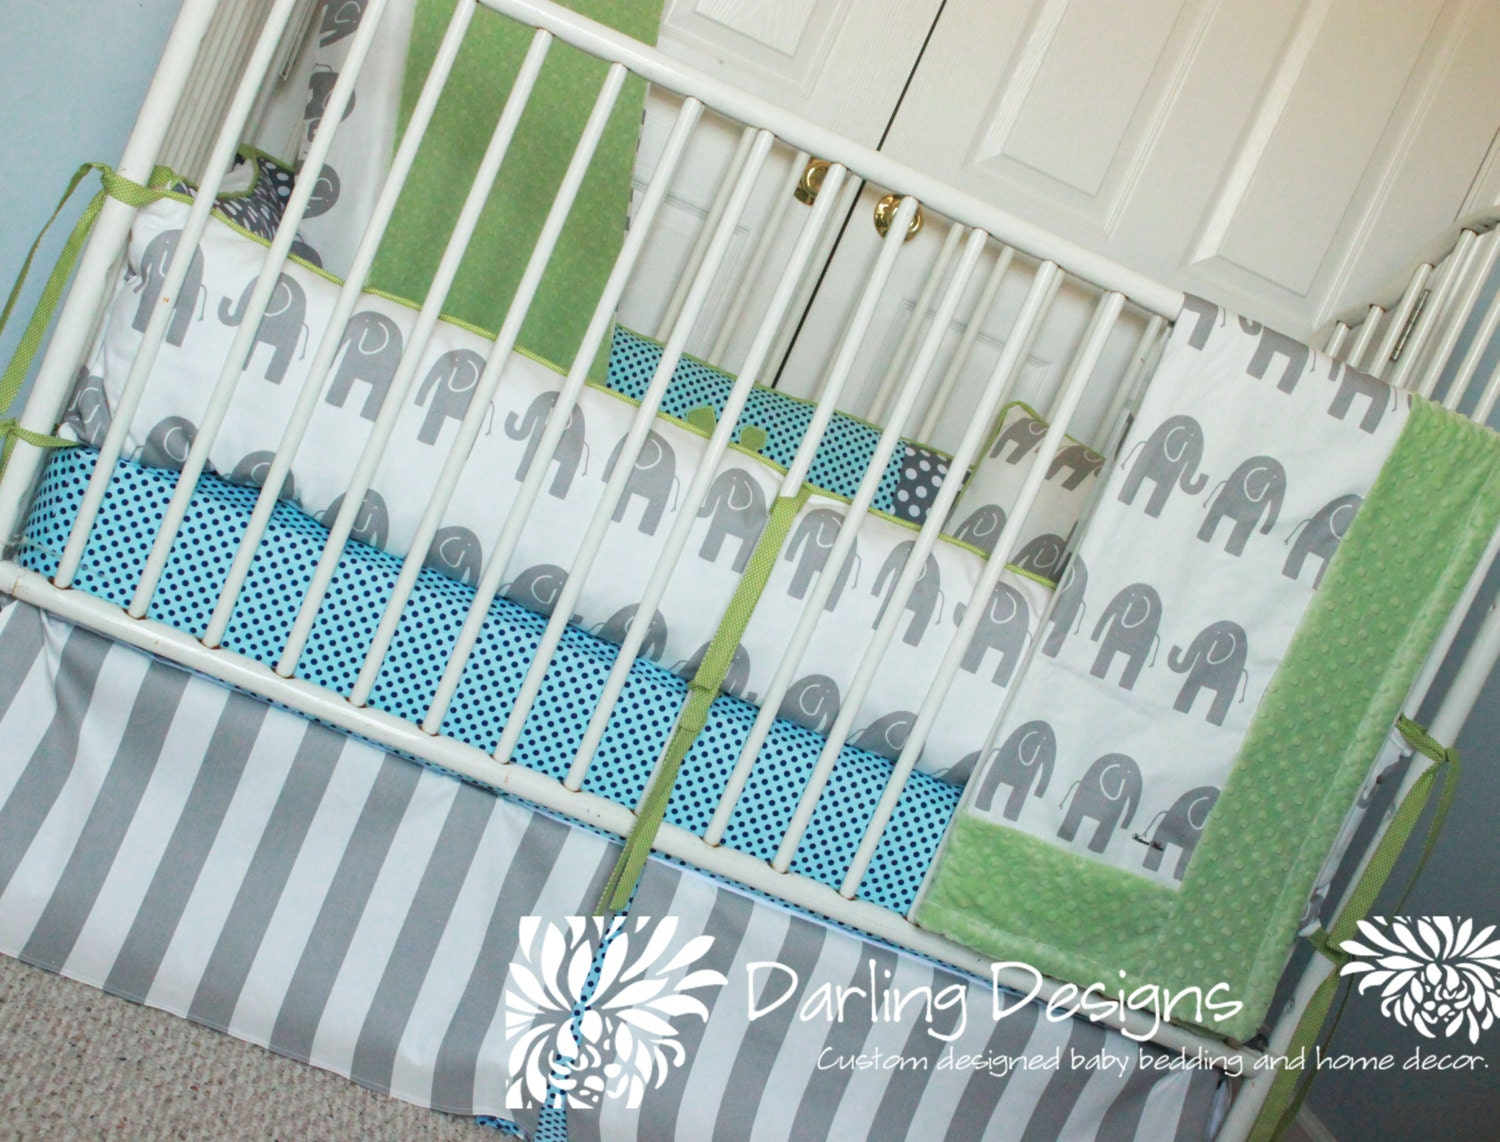 final design of your own baby bedding | Baby Bedding Set design your own custom by DarlingDesignsbyLB